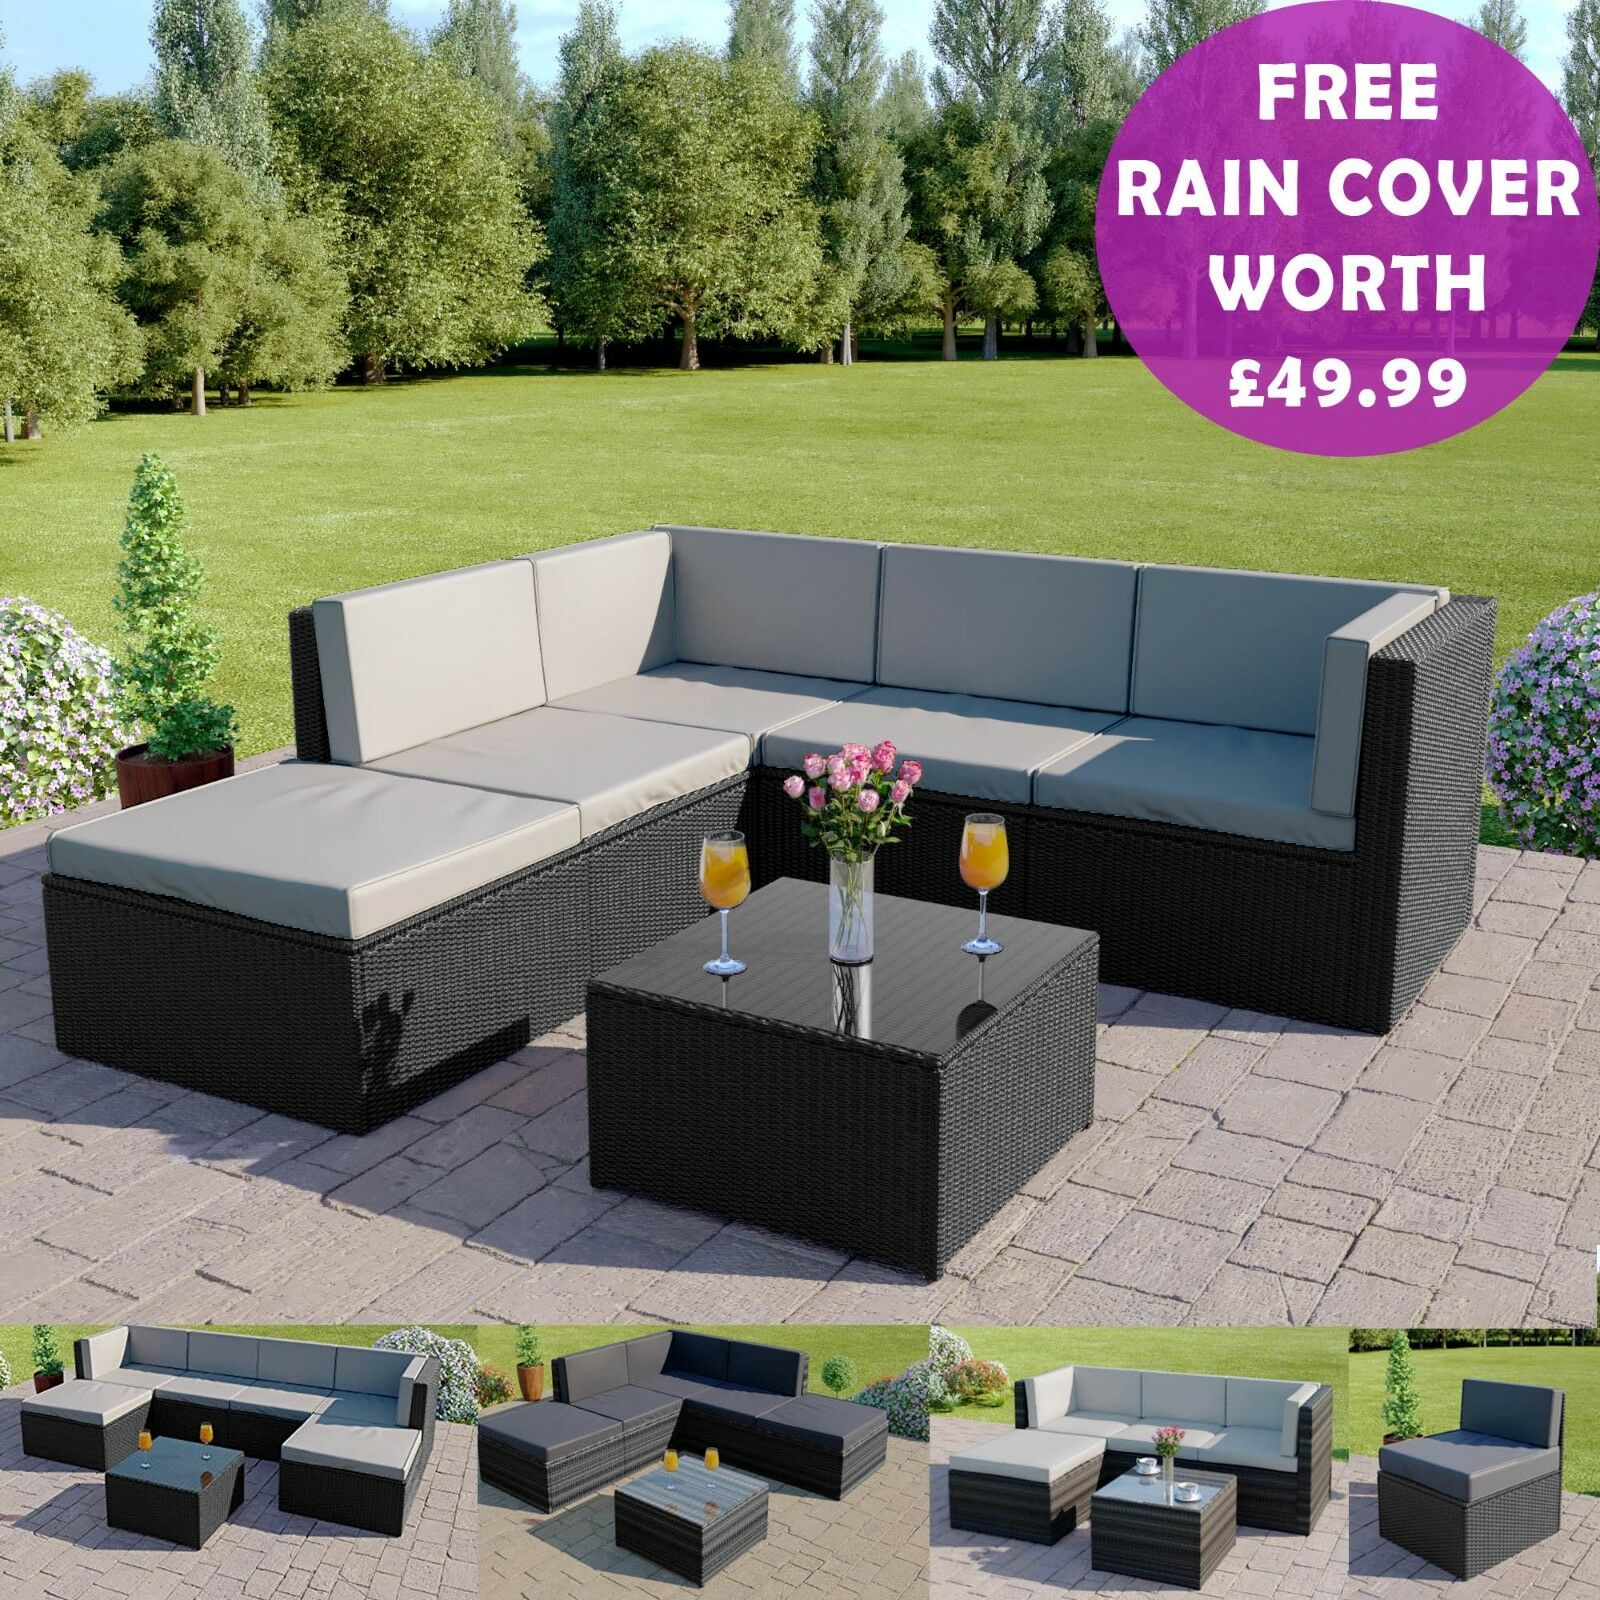 Garden Furniture - Black Grey Corner Modular Rattan Weave Sofa Set Garden Furniture FREE COVER